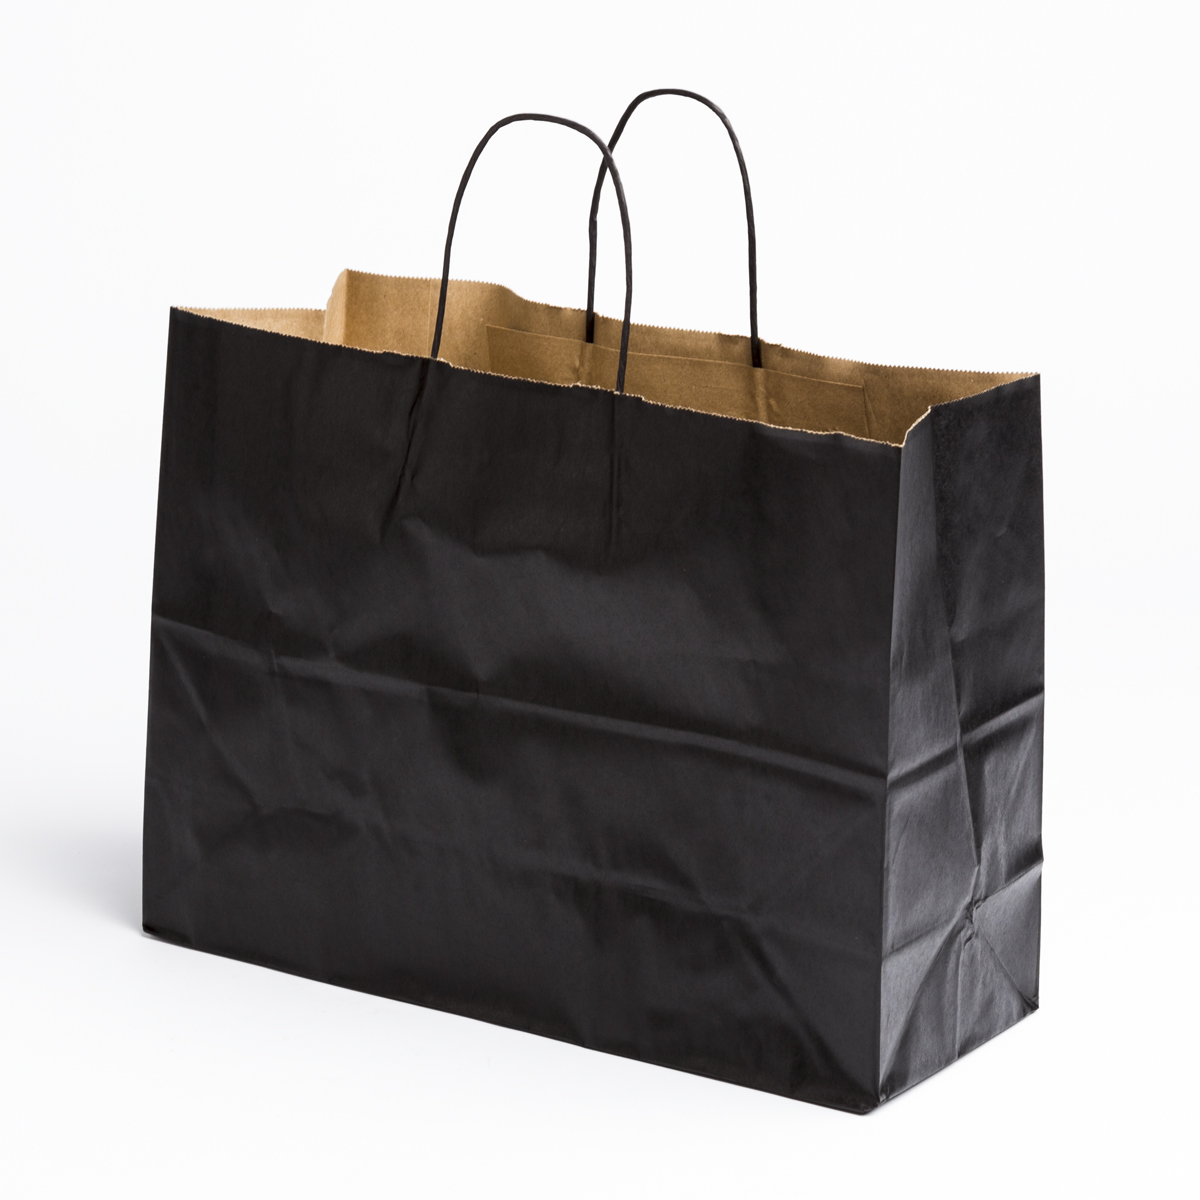 Black Paper Shopping Bags - Large | A&B Store Fixtures